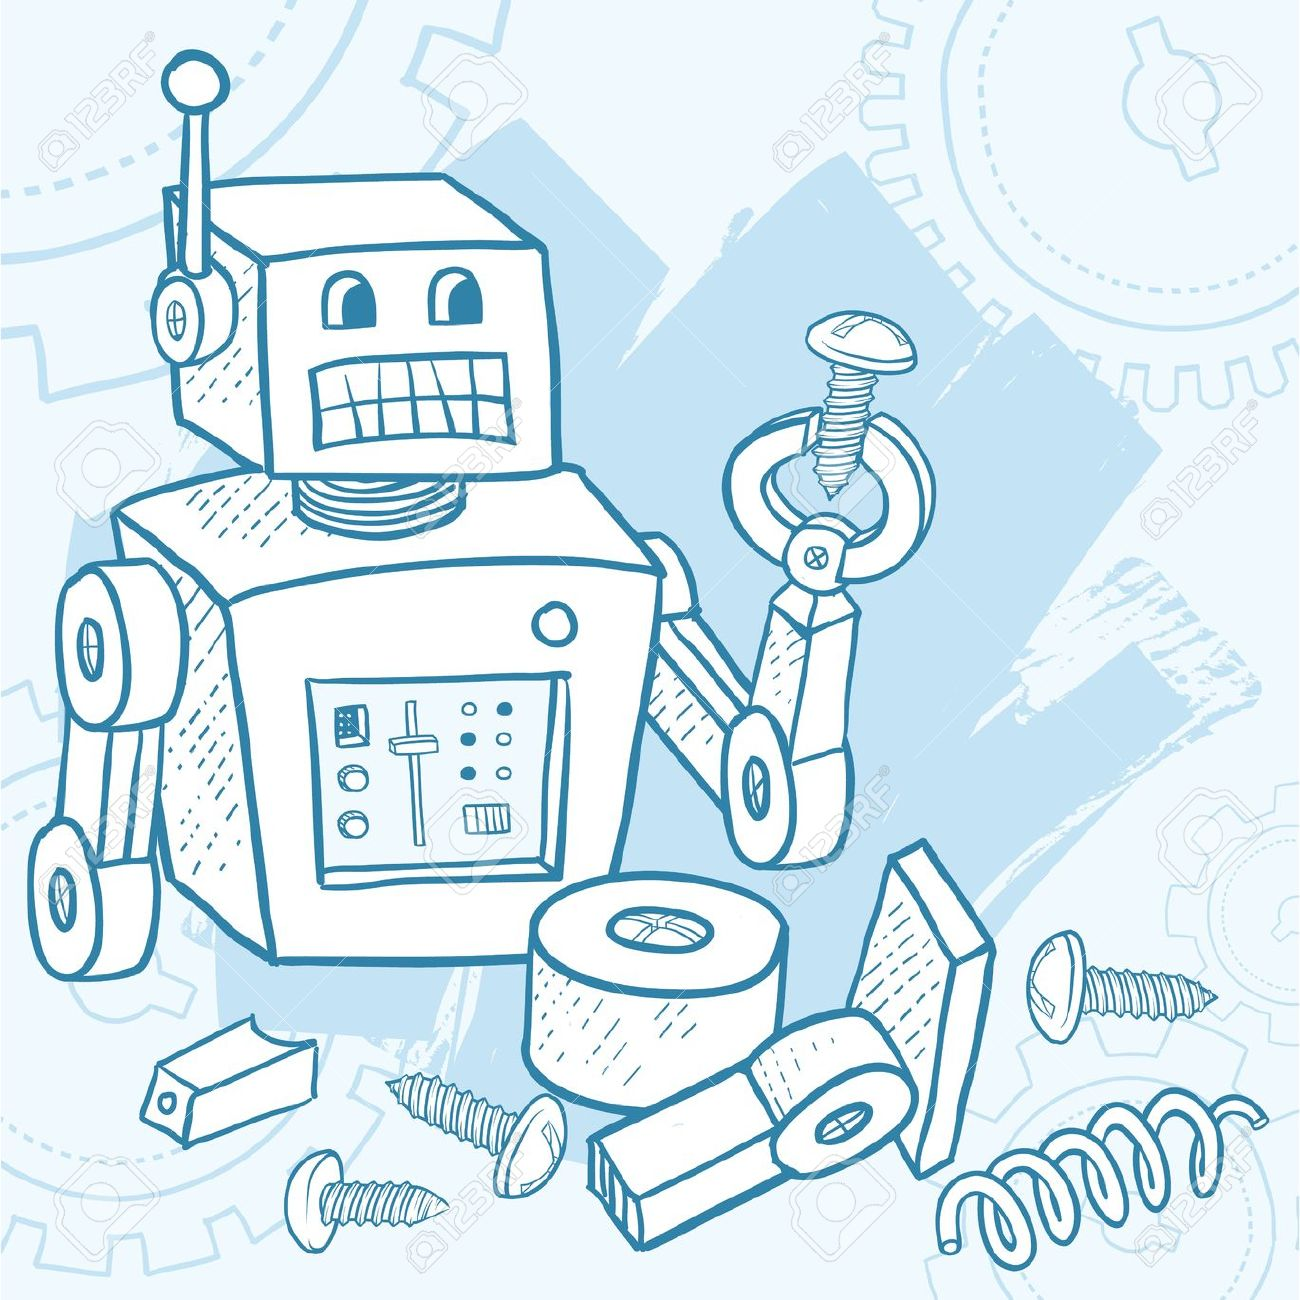 13543760-broken-robot-assembling-itself-with-parts-and-screws-laying-around-stock-photo